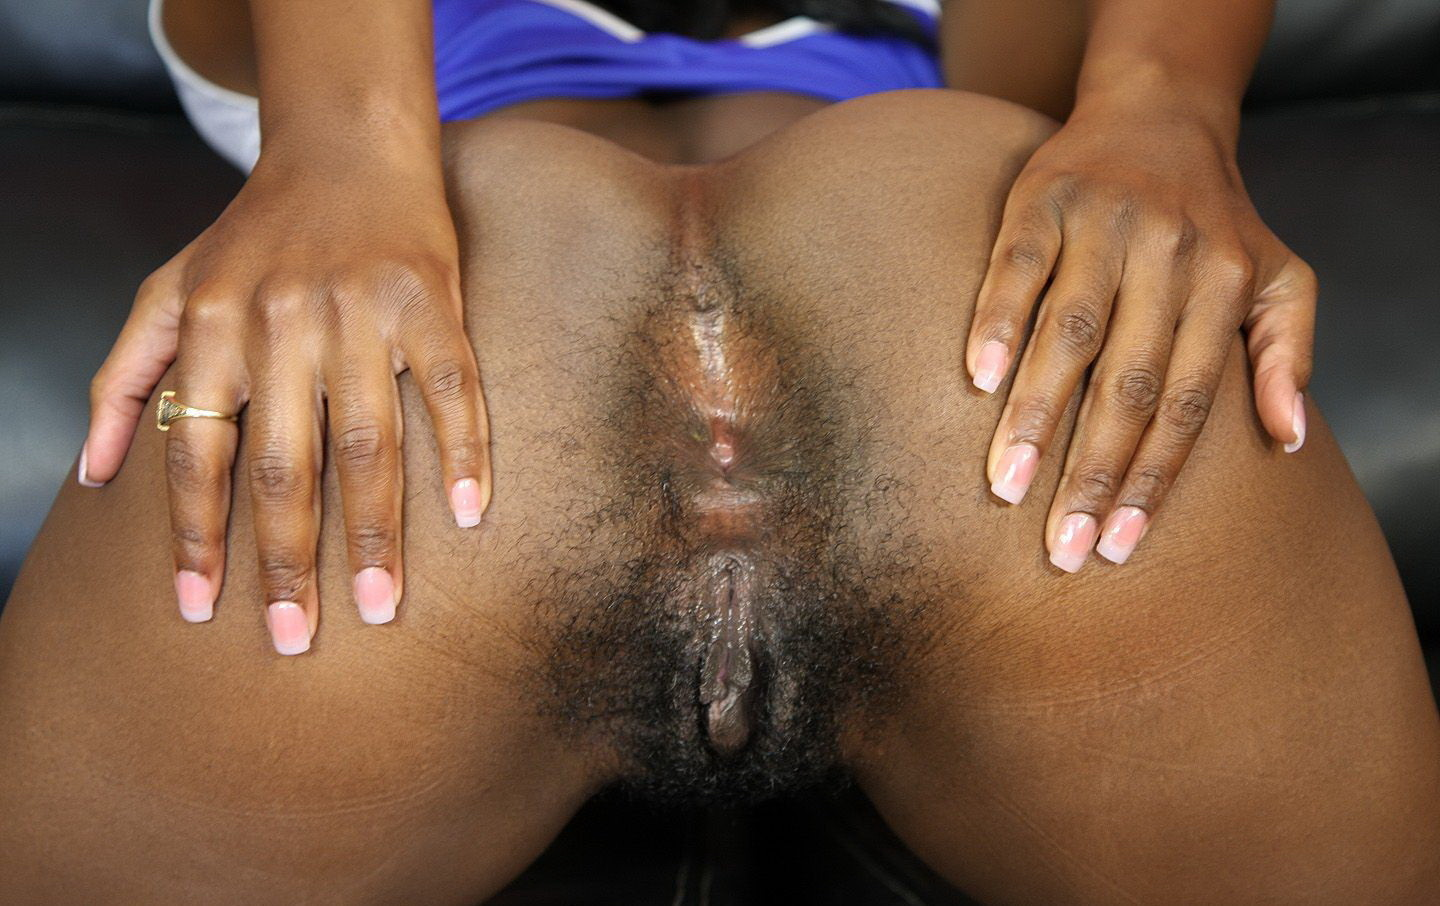 bending over naked ebony